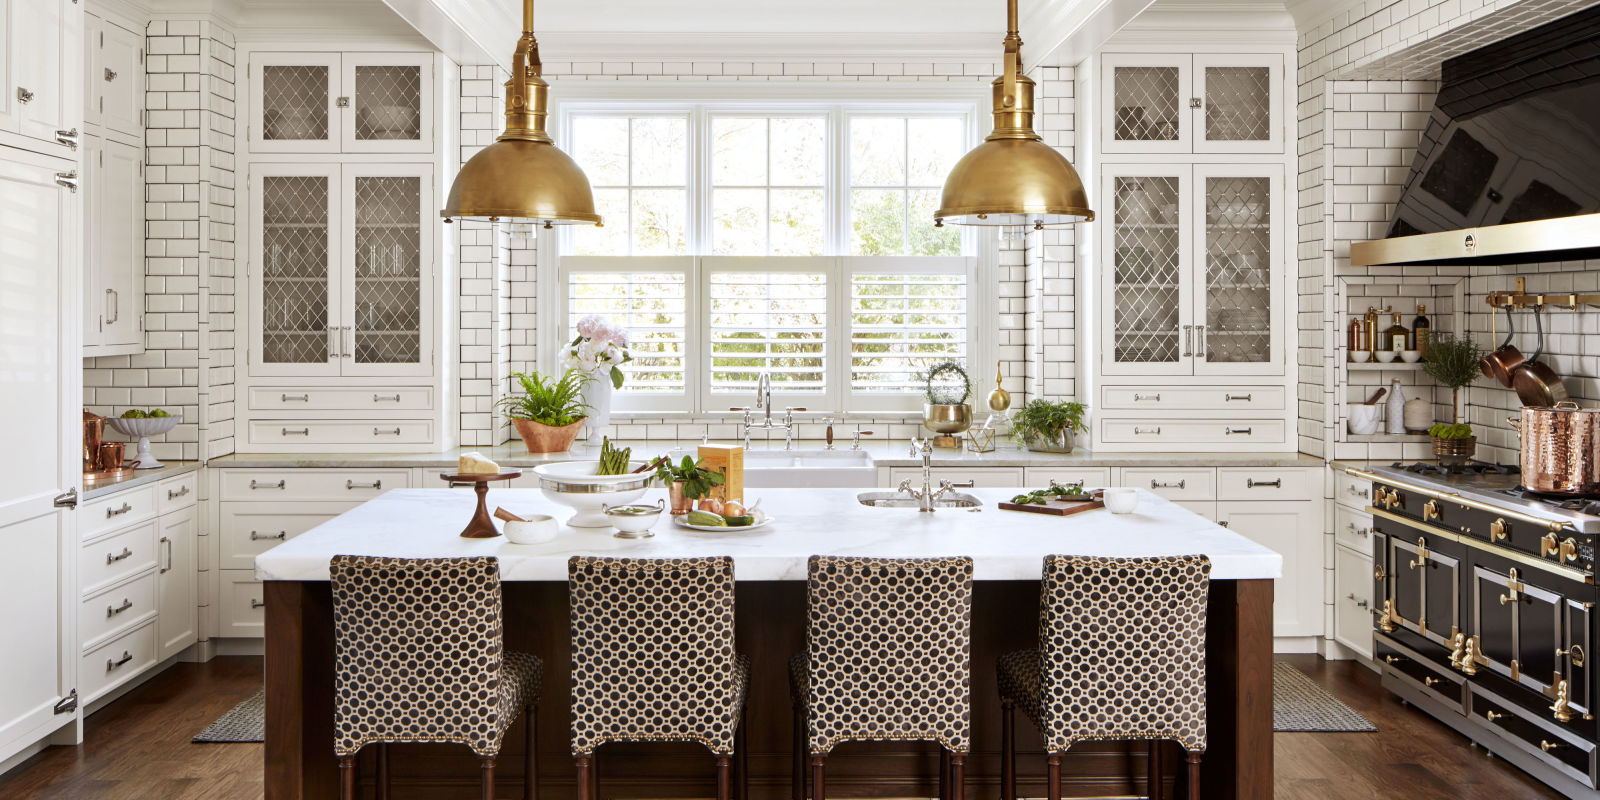 8 kitchen tips from restaurant pros rebekah zaveloff for House beautiful kitchens